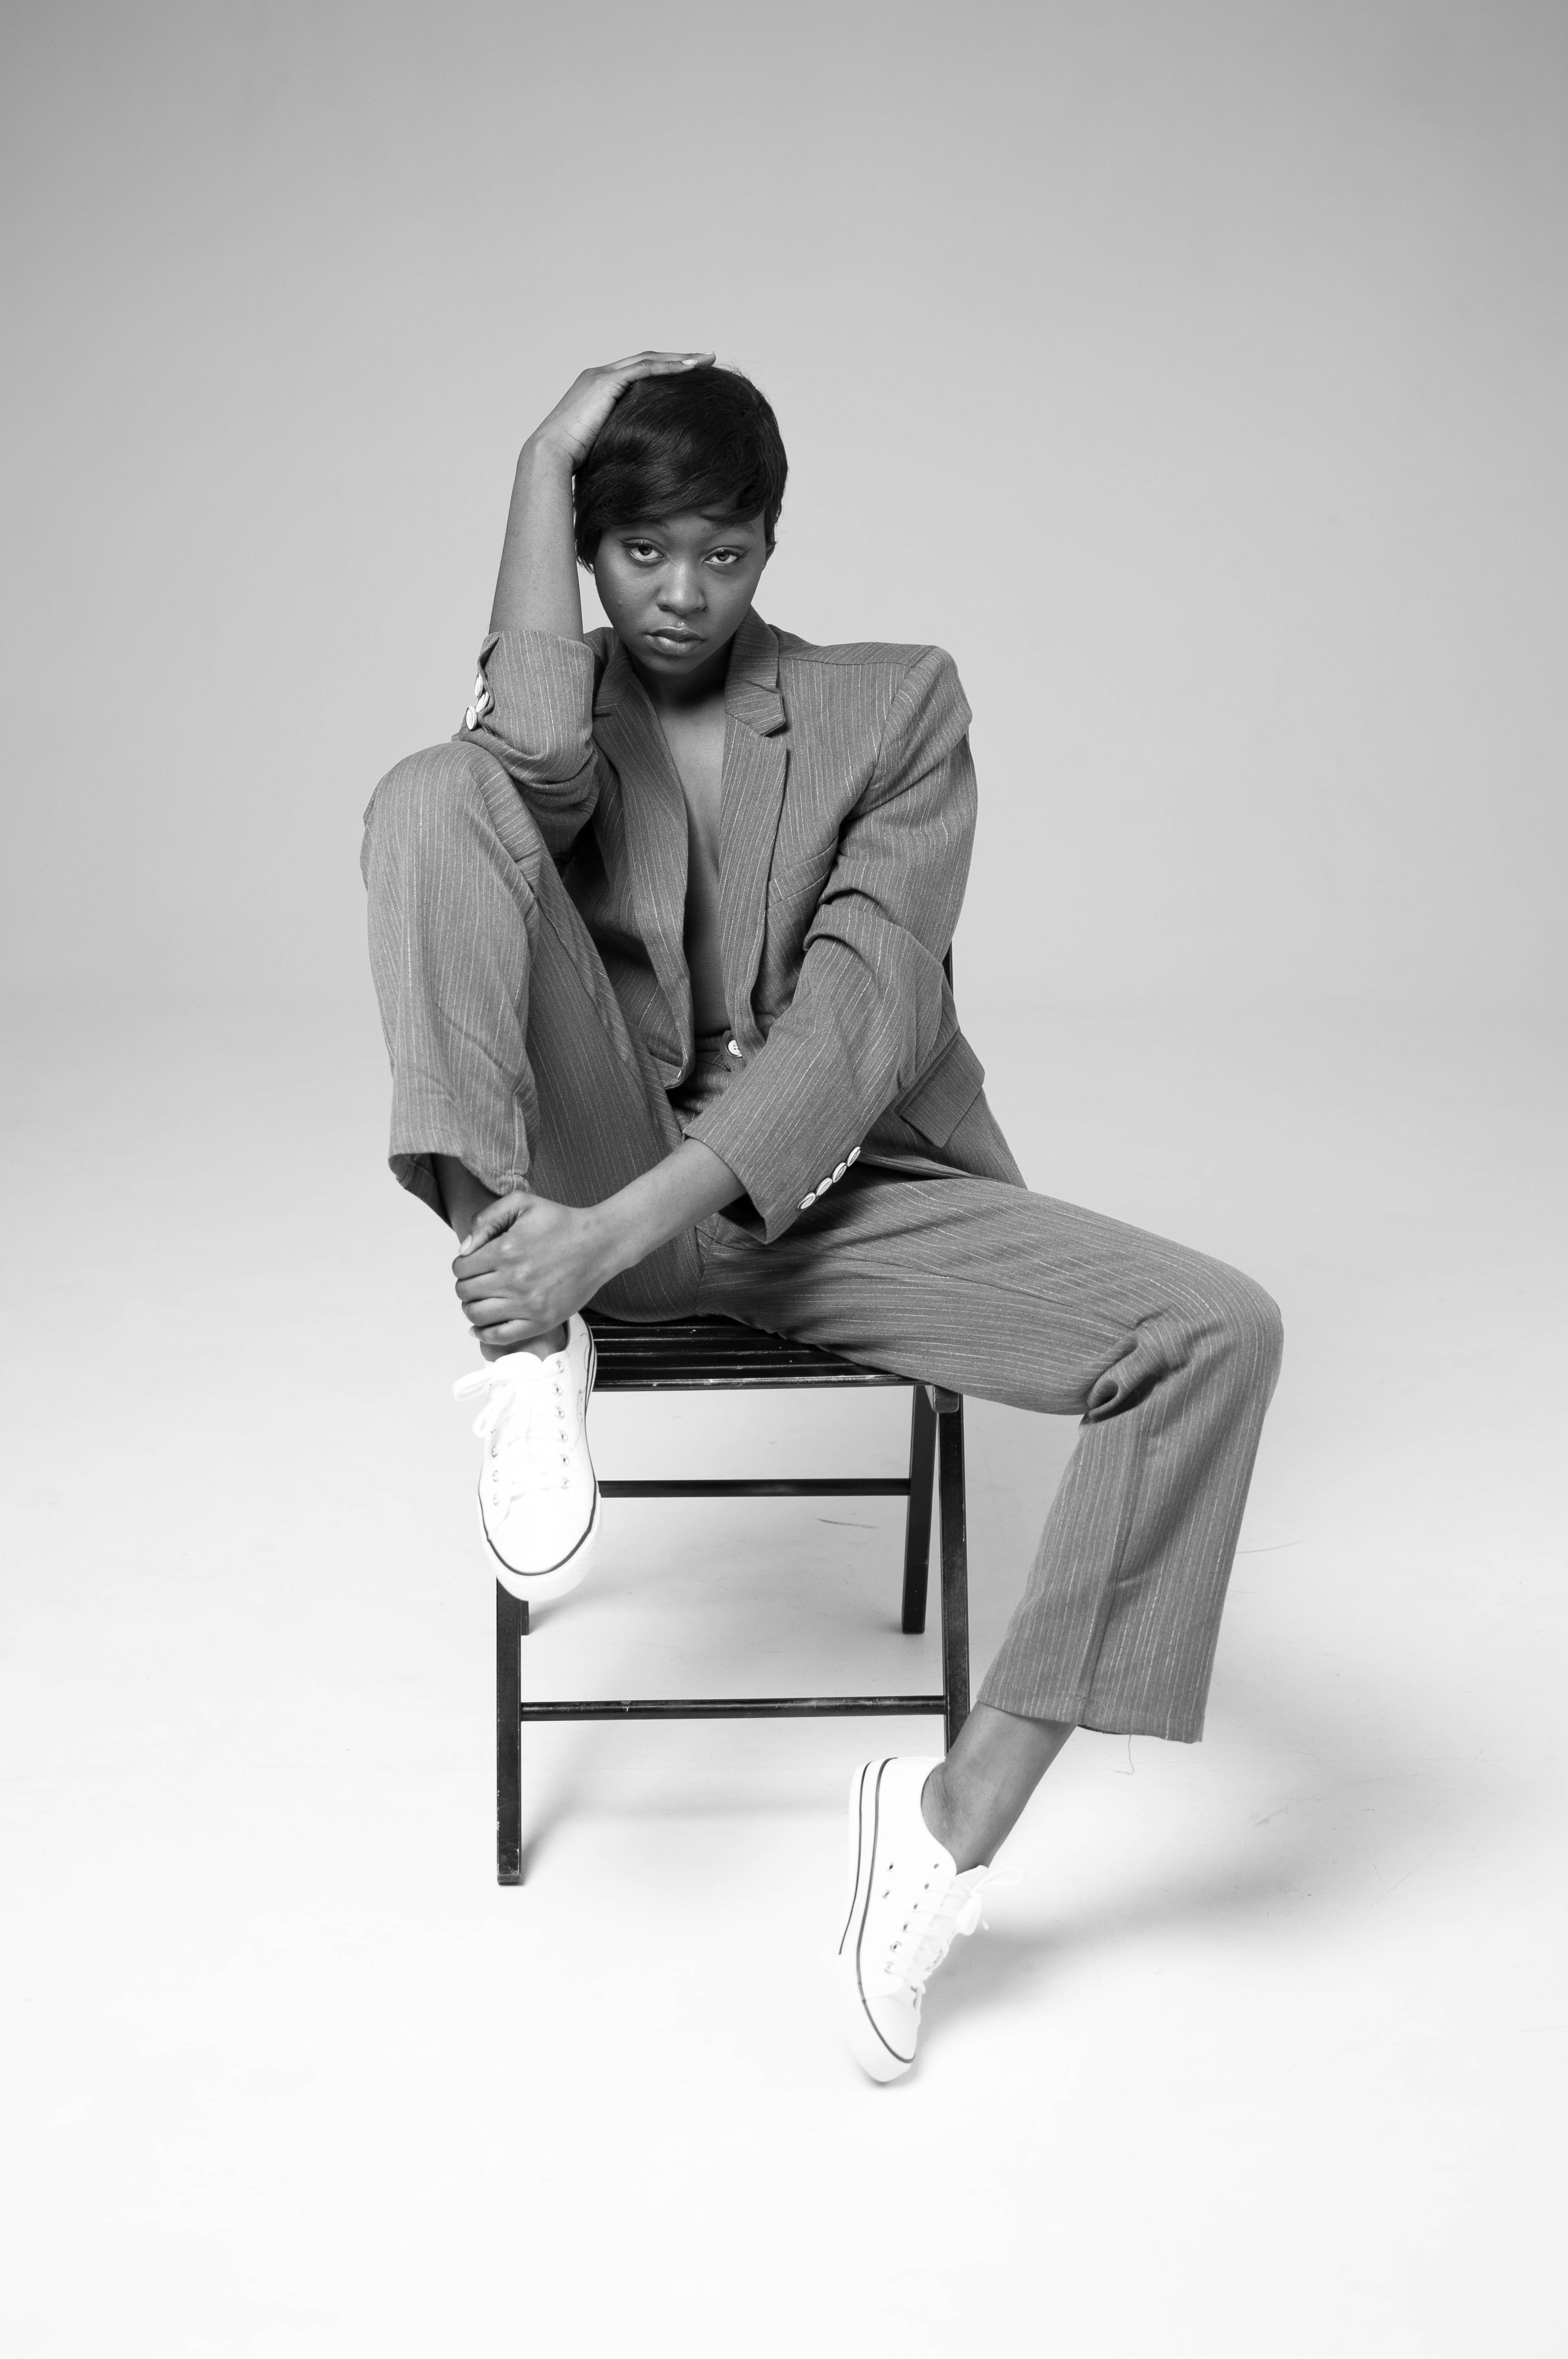 Woman Sitting On Metal Chair, Pose, Wear, Suit, Style, HQ Photo